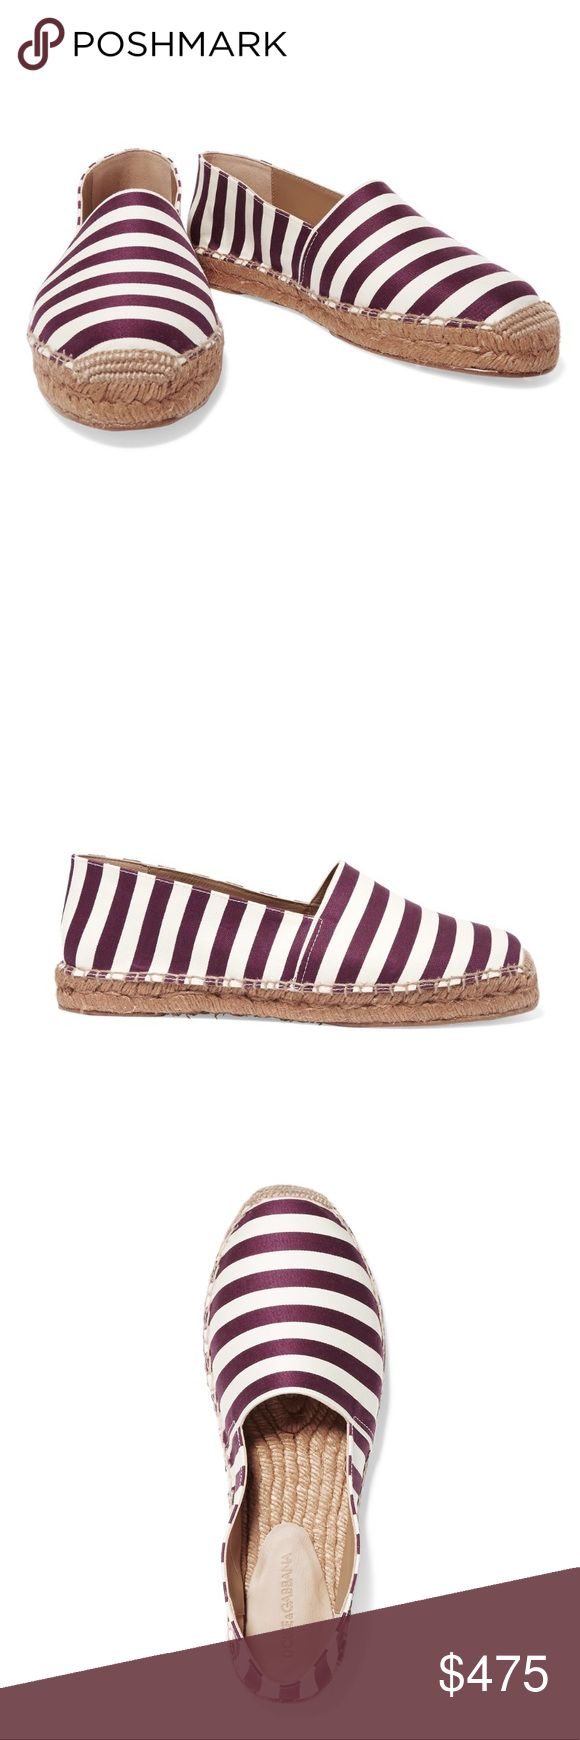 DOLCE & GABBANNA Canvas Espadrilles NWT DOLCE & GABBANNA White and Purple Espadrilles  - Brand new in box - Retails $665 - Jute sole (1 inch) - Round toe - Slip on - Made in Italy 🇮🇹  - True Size  - No Trades ❌ - Offers ✅ Dolce & Gabbana Shoes Espadrilles